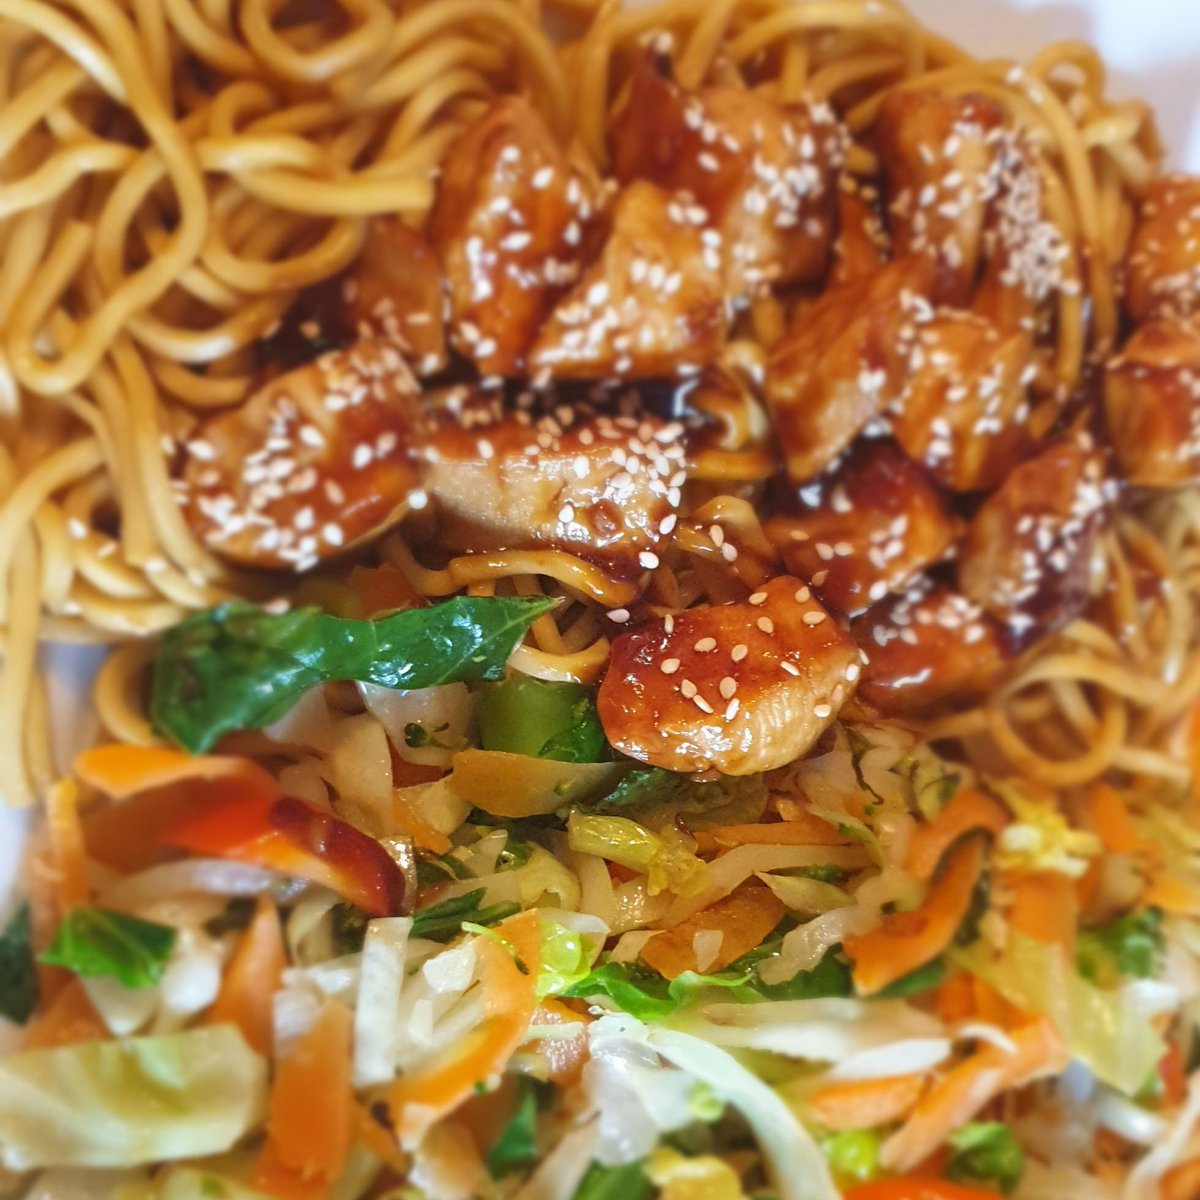 Sw chubby Cubs sticky sesame chicken with stir fry veg and noodles, bloody lush http://twochubbycubs.com/2018/02/08/instant-pot-sticky-sesame-chicken/… #slimmingworld #twochubbycubs #sesameseed #chicken